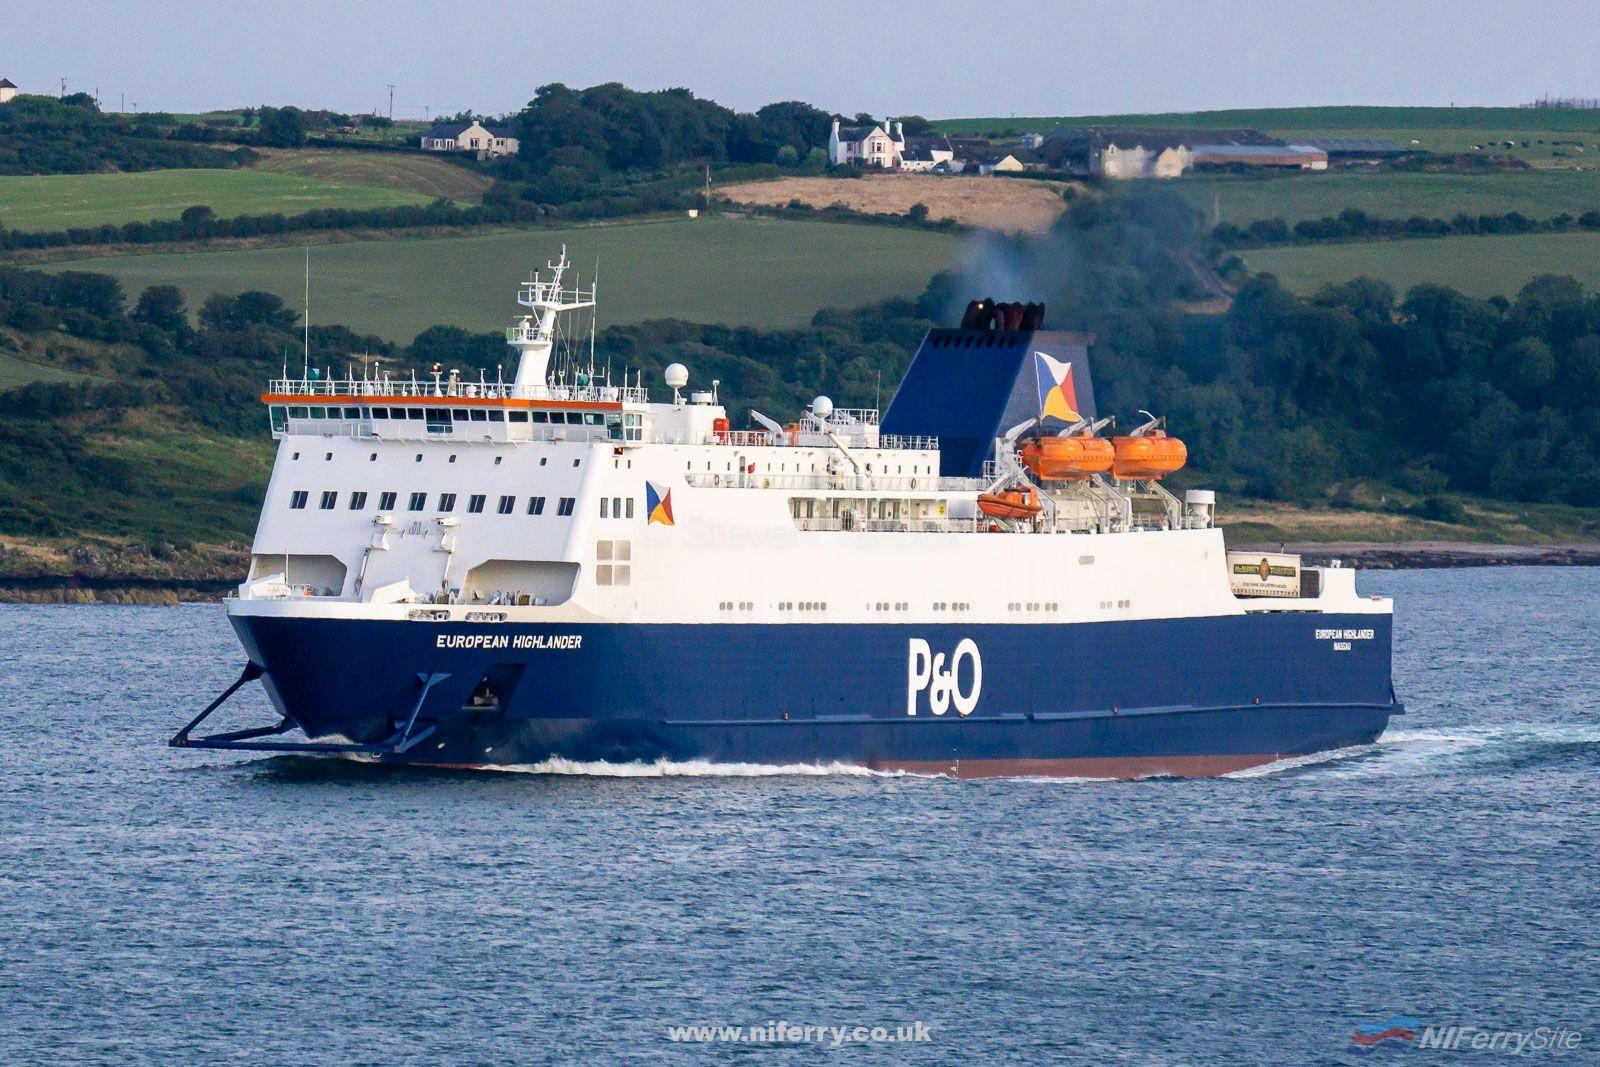 P&O Ferries EUROPEAN HIGHLANDER makes her way past Loch Ryan Port towards Cairnryan on her 04:00 sailing from Larne, 03.08.19. Copyright © Steven Tarbox.